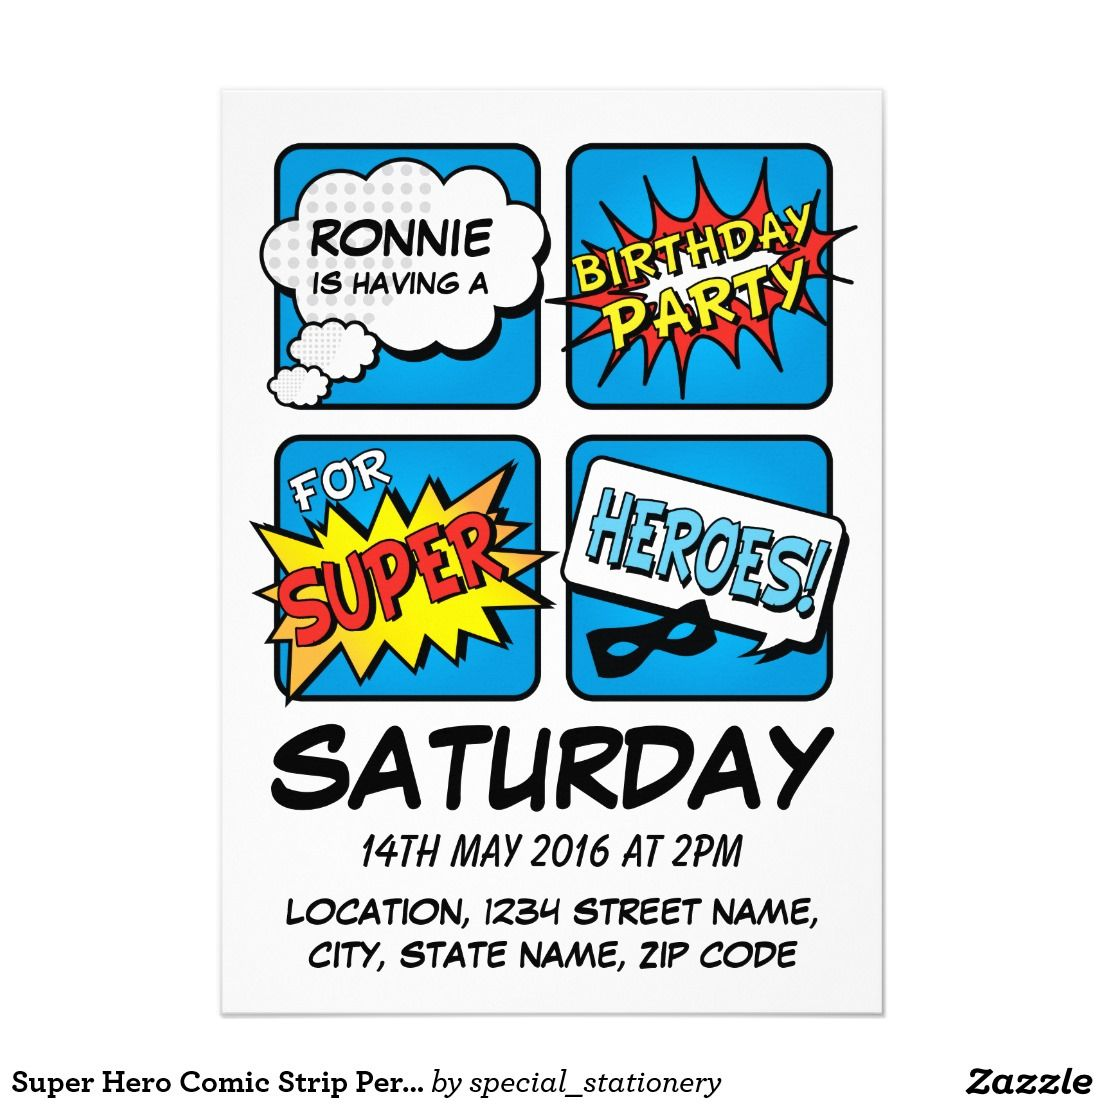 Super Hero Comic Strip Personalized Kids Birthday Invitation